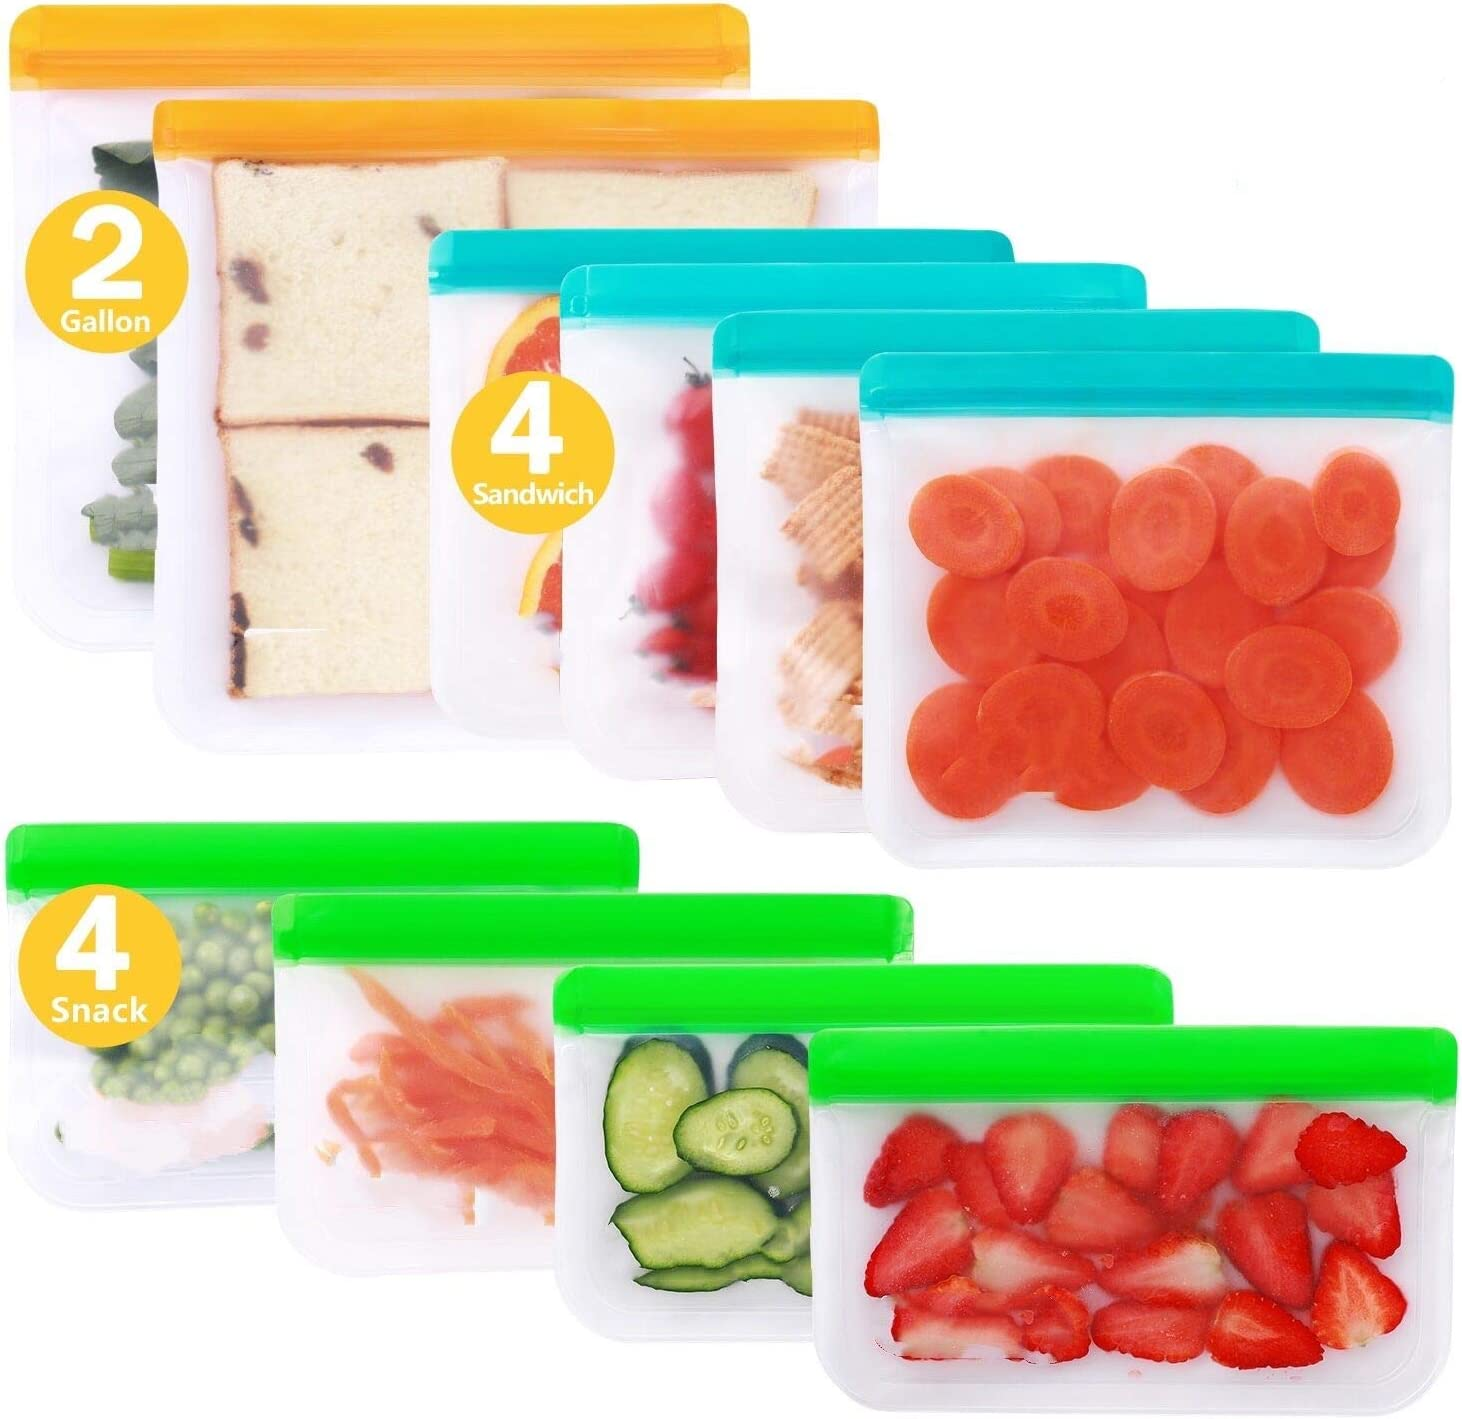 Reusable Storage Bags - 10 Pack BPA FREE Freezer Bags(2 Gallon Bags + 4 Sandwich Bags + 4 Snack Bags) Leakproof Lunch Reusable Bags for Home Kitchen Travel Organization Food Marinate Meat Fruit Cereal